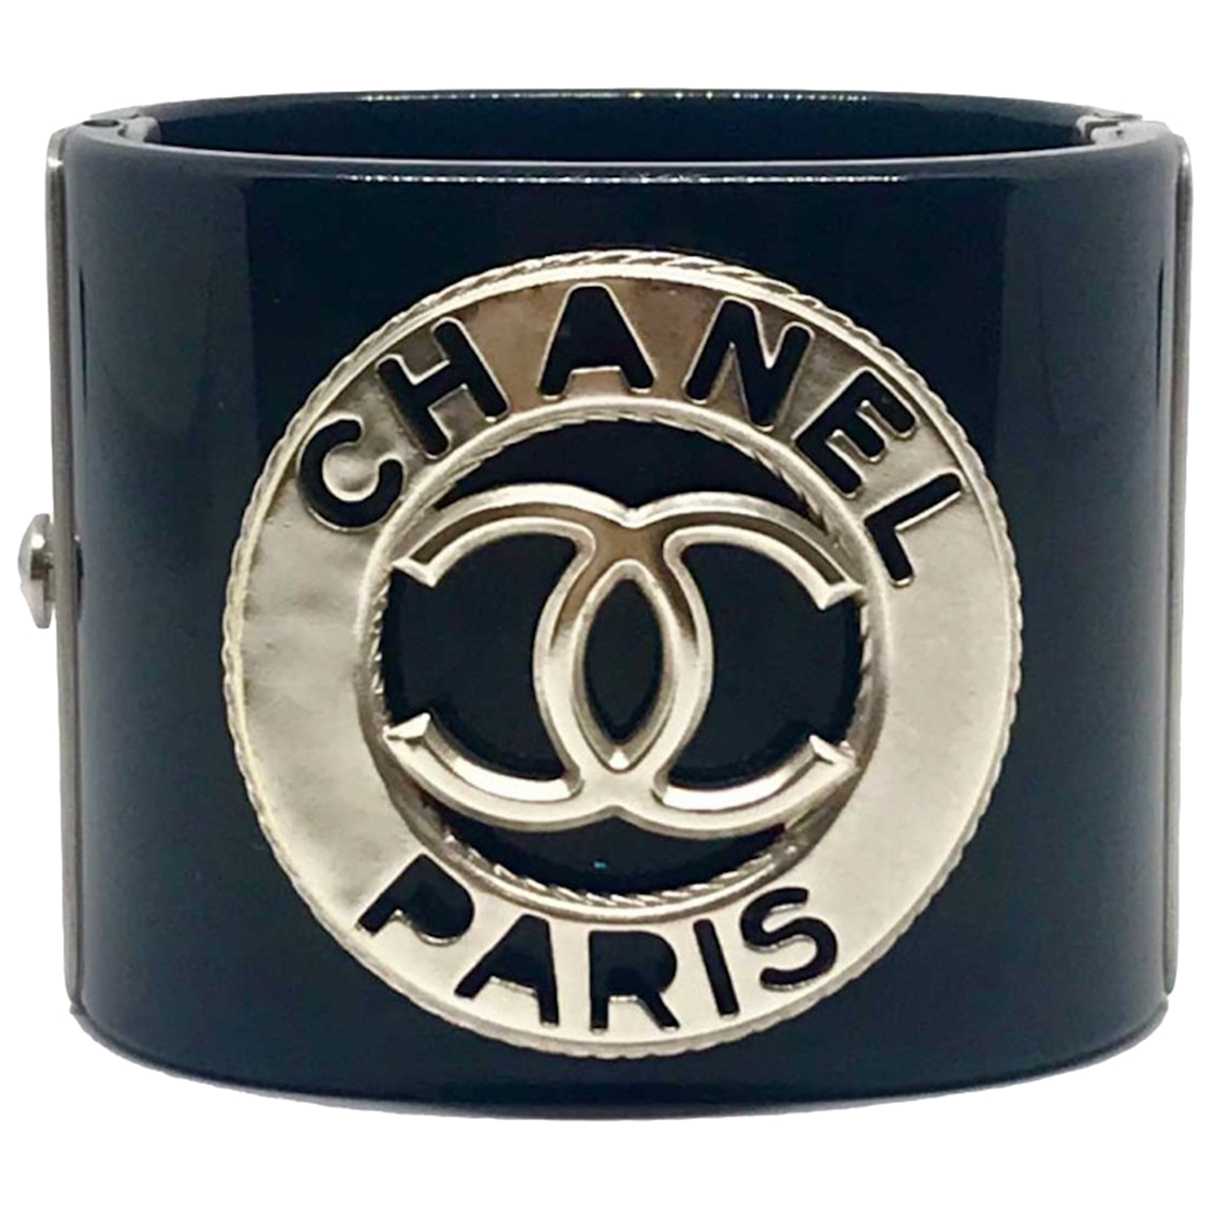 Chanel \N Black bracelet for Women \N